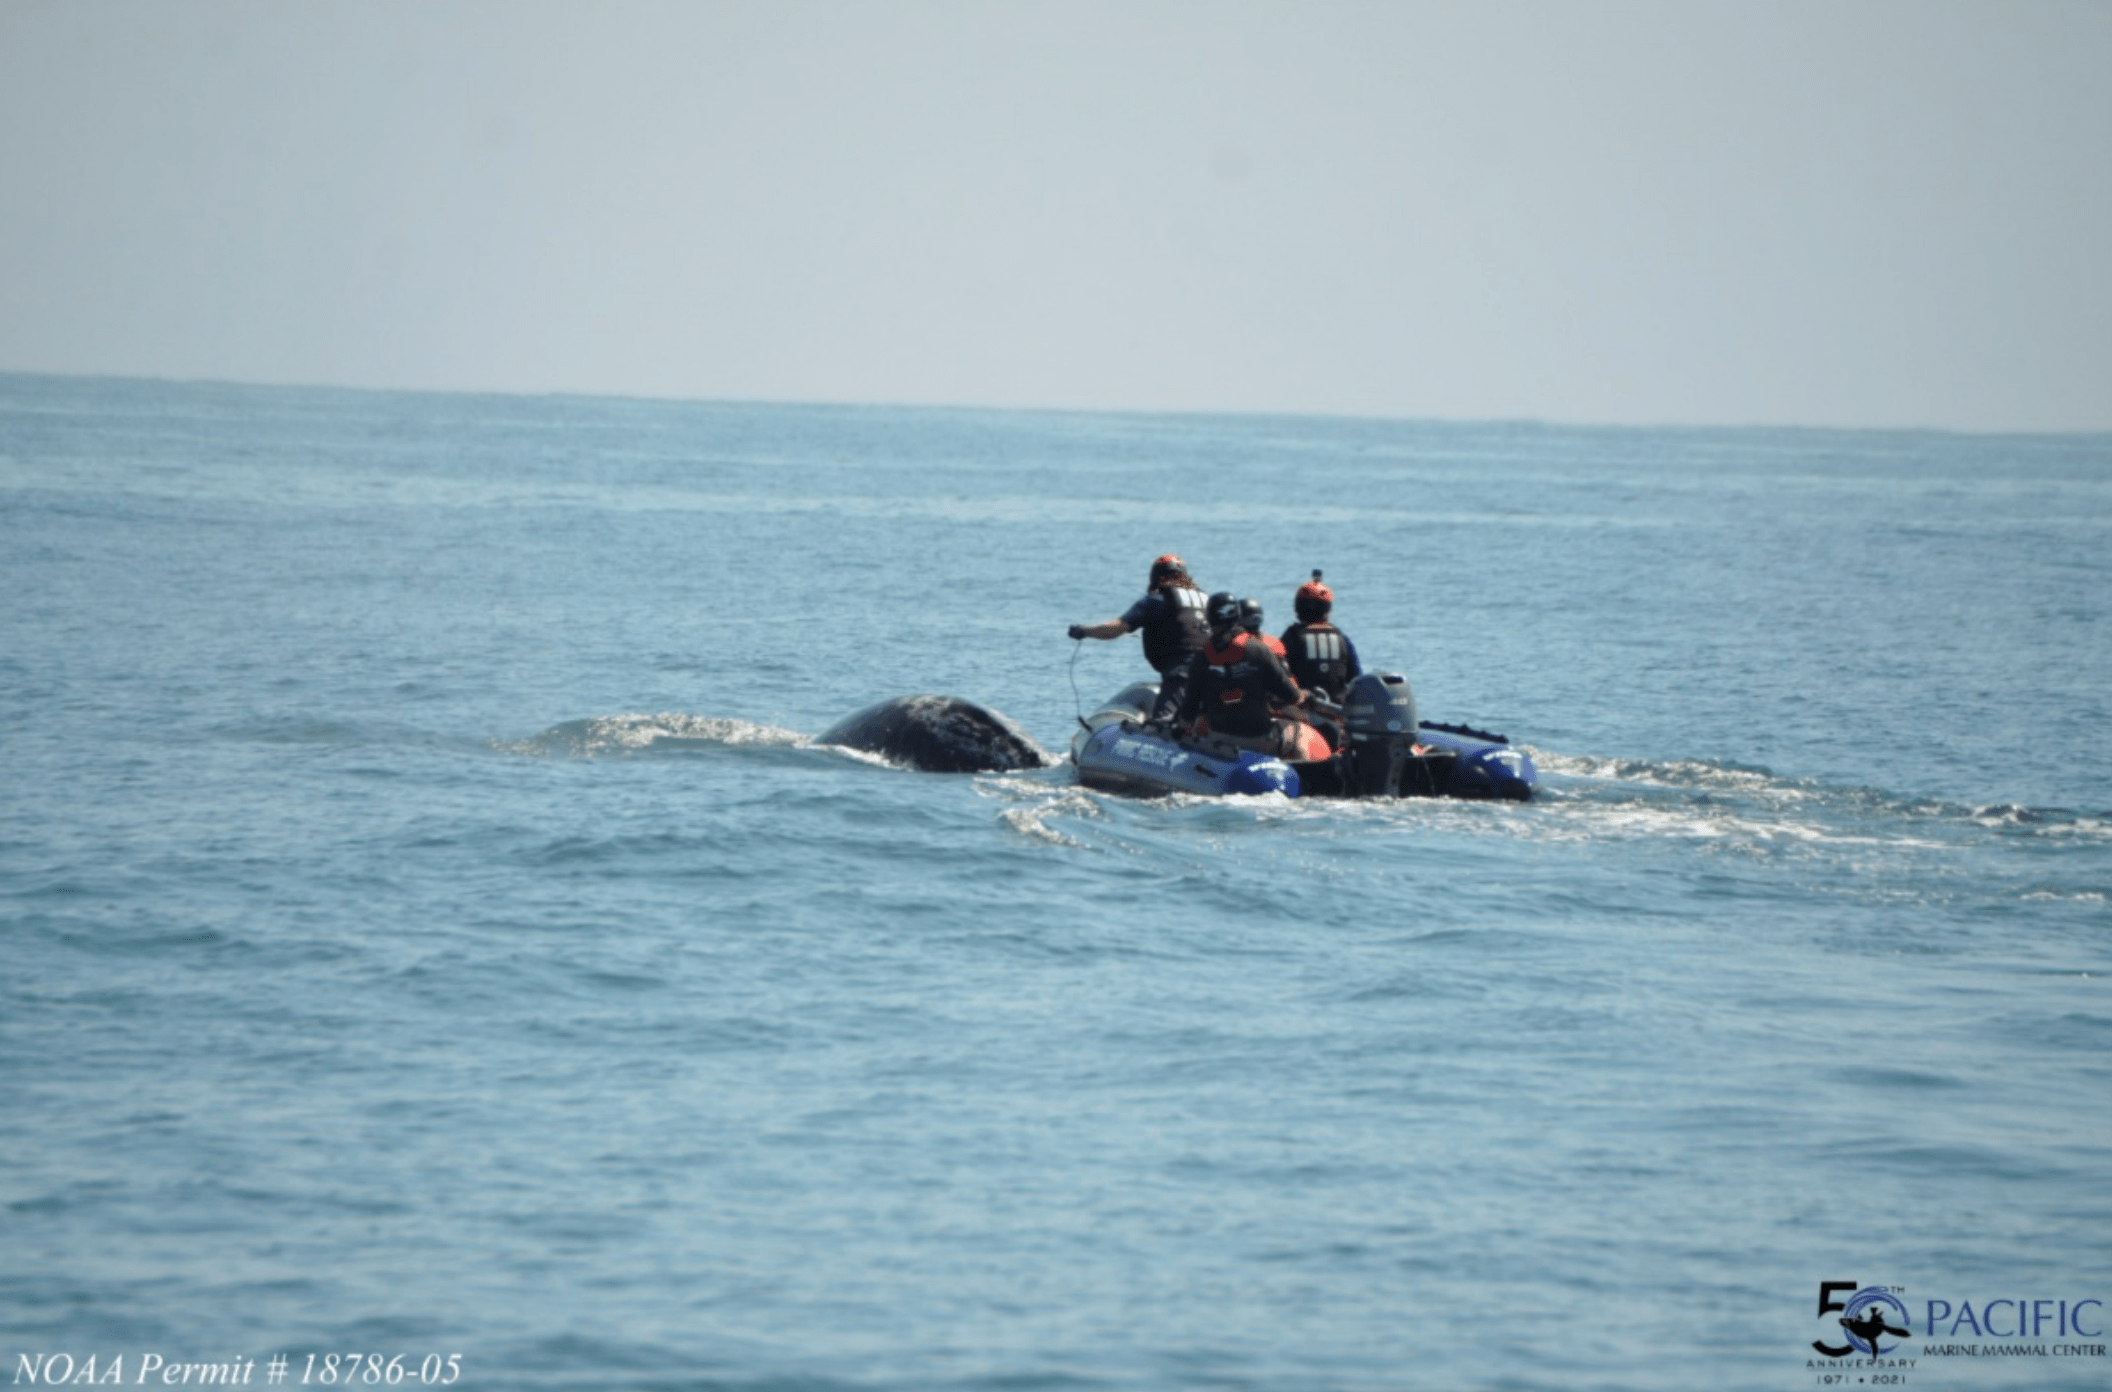 A crew works to free an entangled whale calf off the coast of Orange county in this undated image provided by the Pacific Marine Mammal Center.